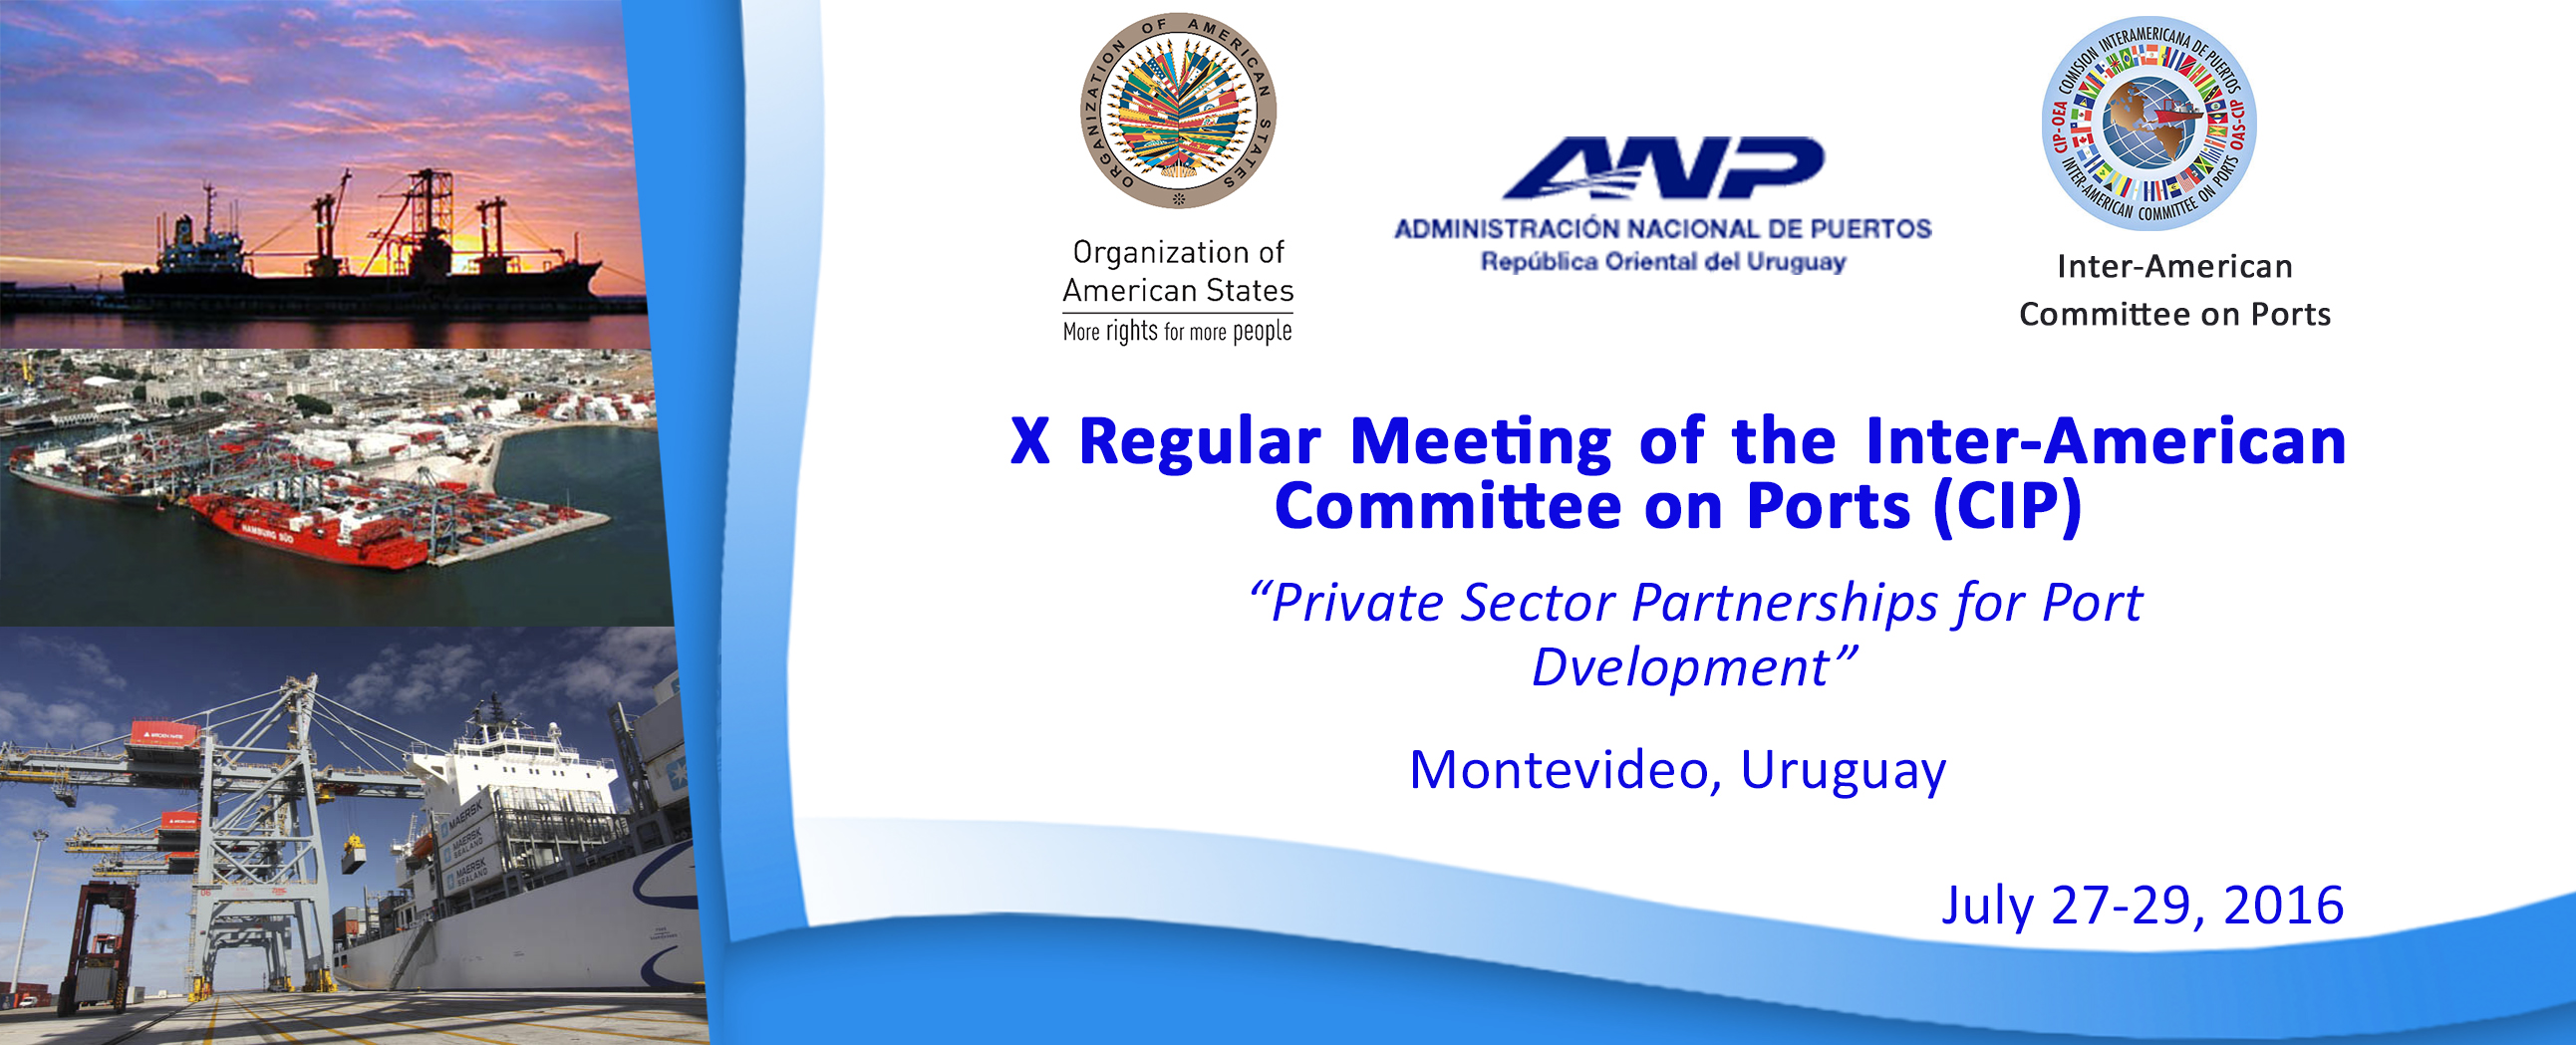 X Regular Meeting of the Inter-American Committee on Ports (CIP)